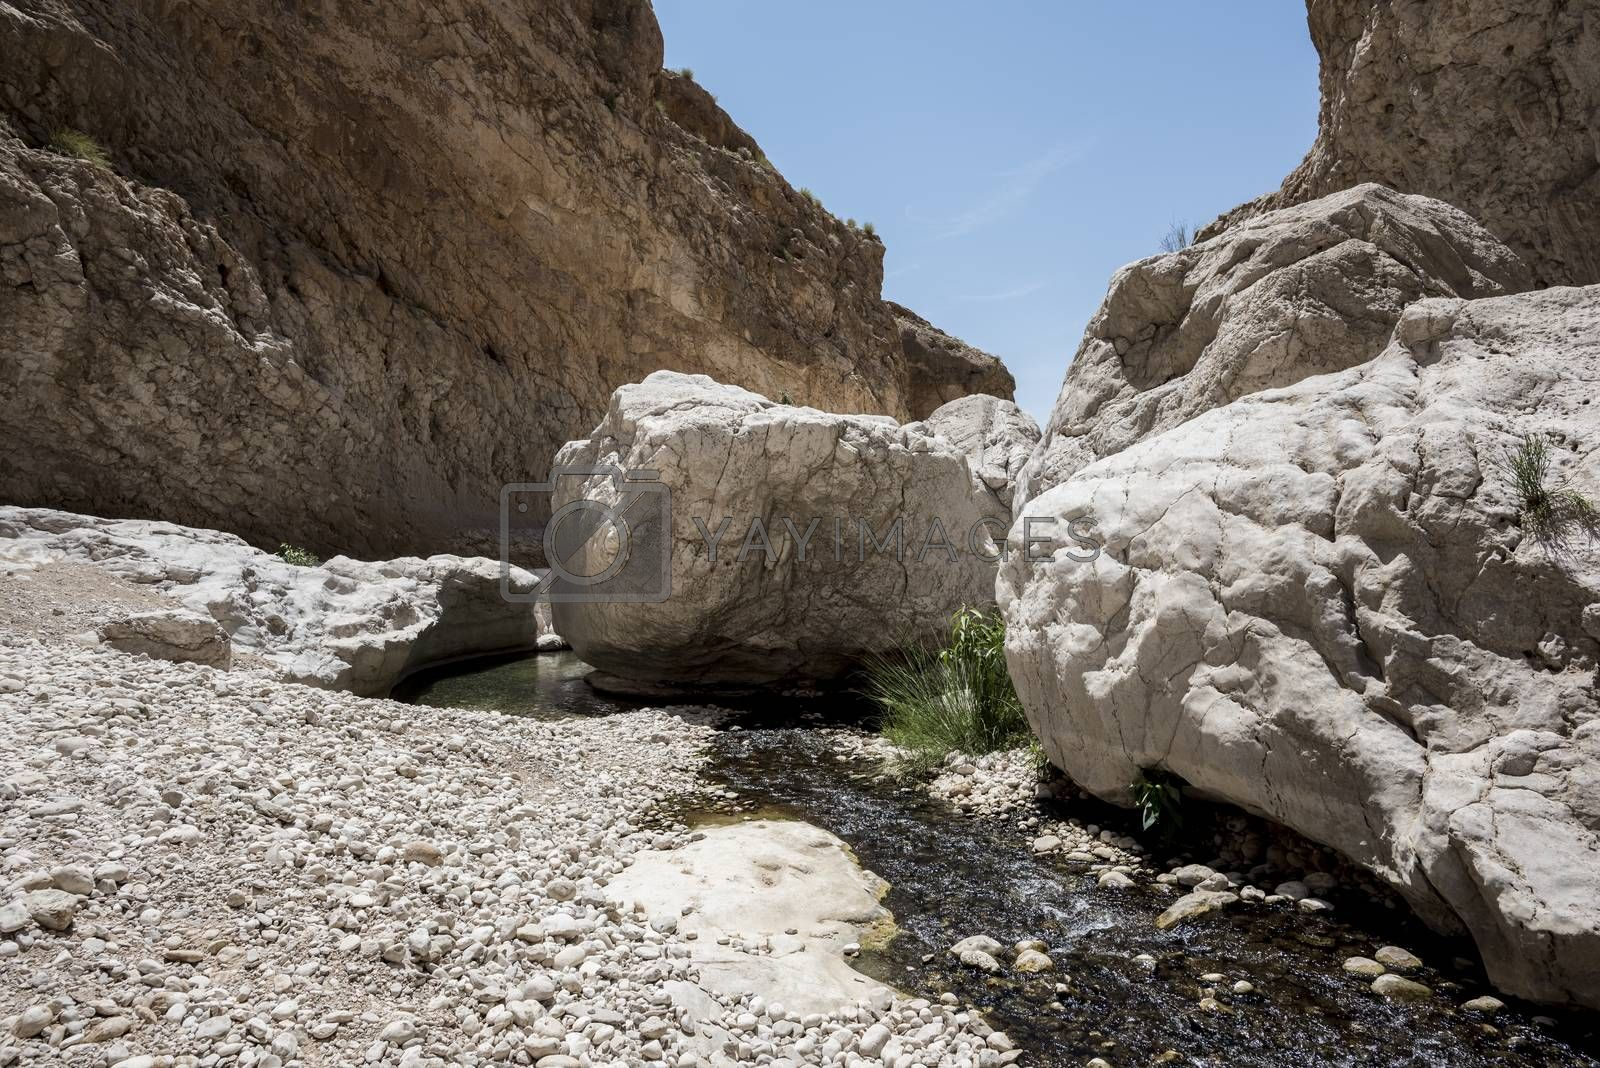 Large stones on the river going thru the canyon of Wadi Bani Khalid, Sultanate of Oman. This is one of the most visited place of the country